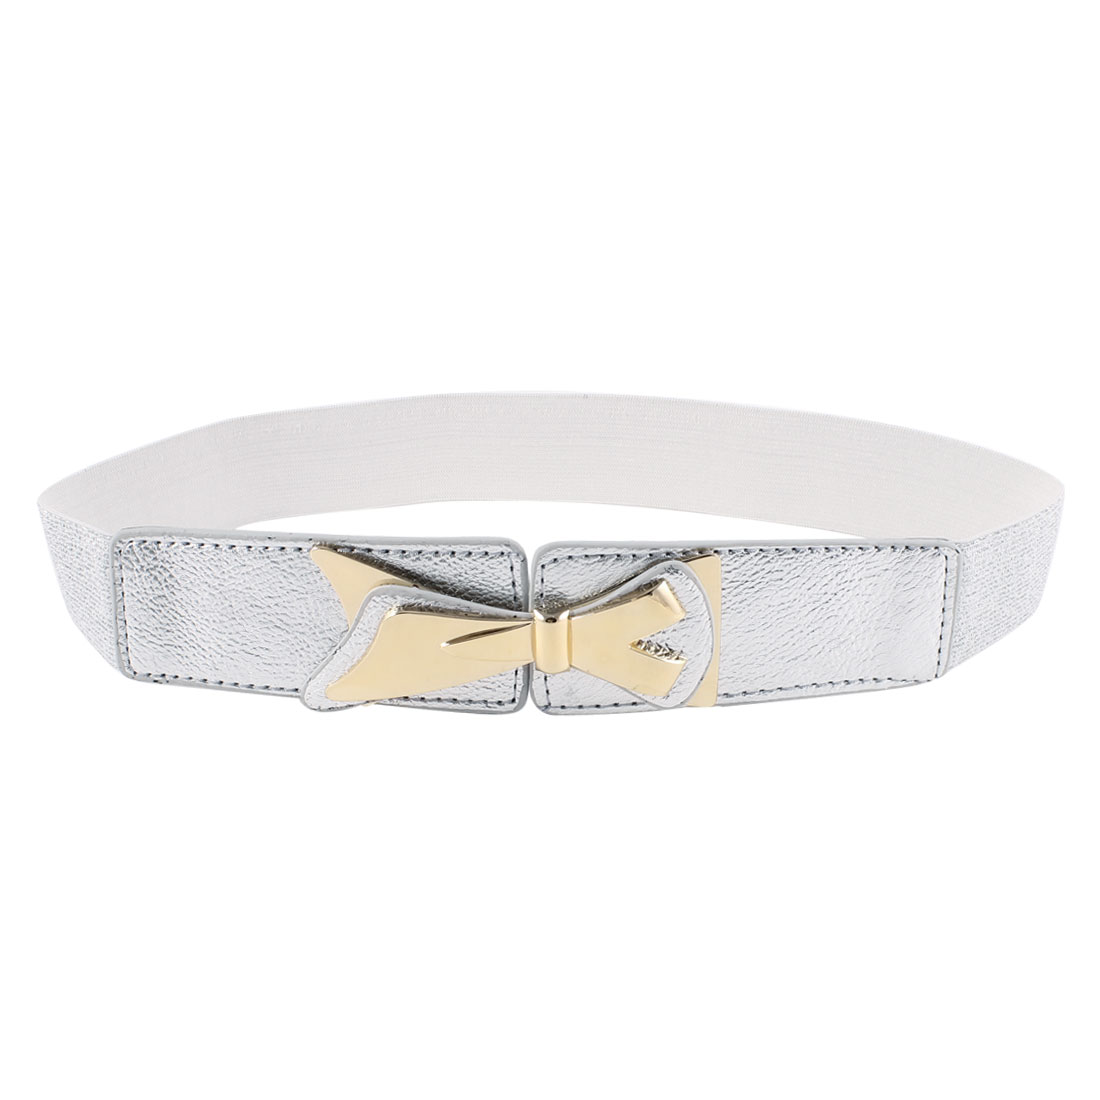 Silver Tone Bowknot Decor Faux Leather Interlock Buckle Stretchy Belt for Lady